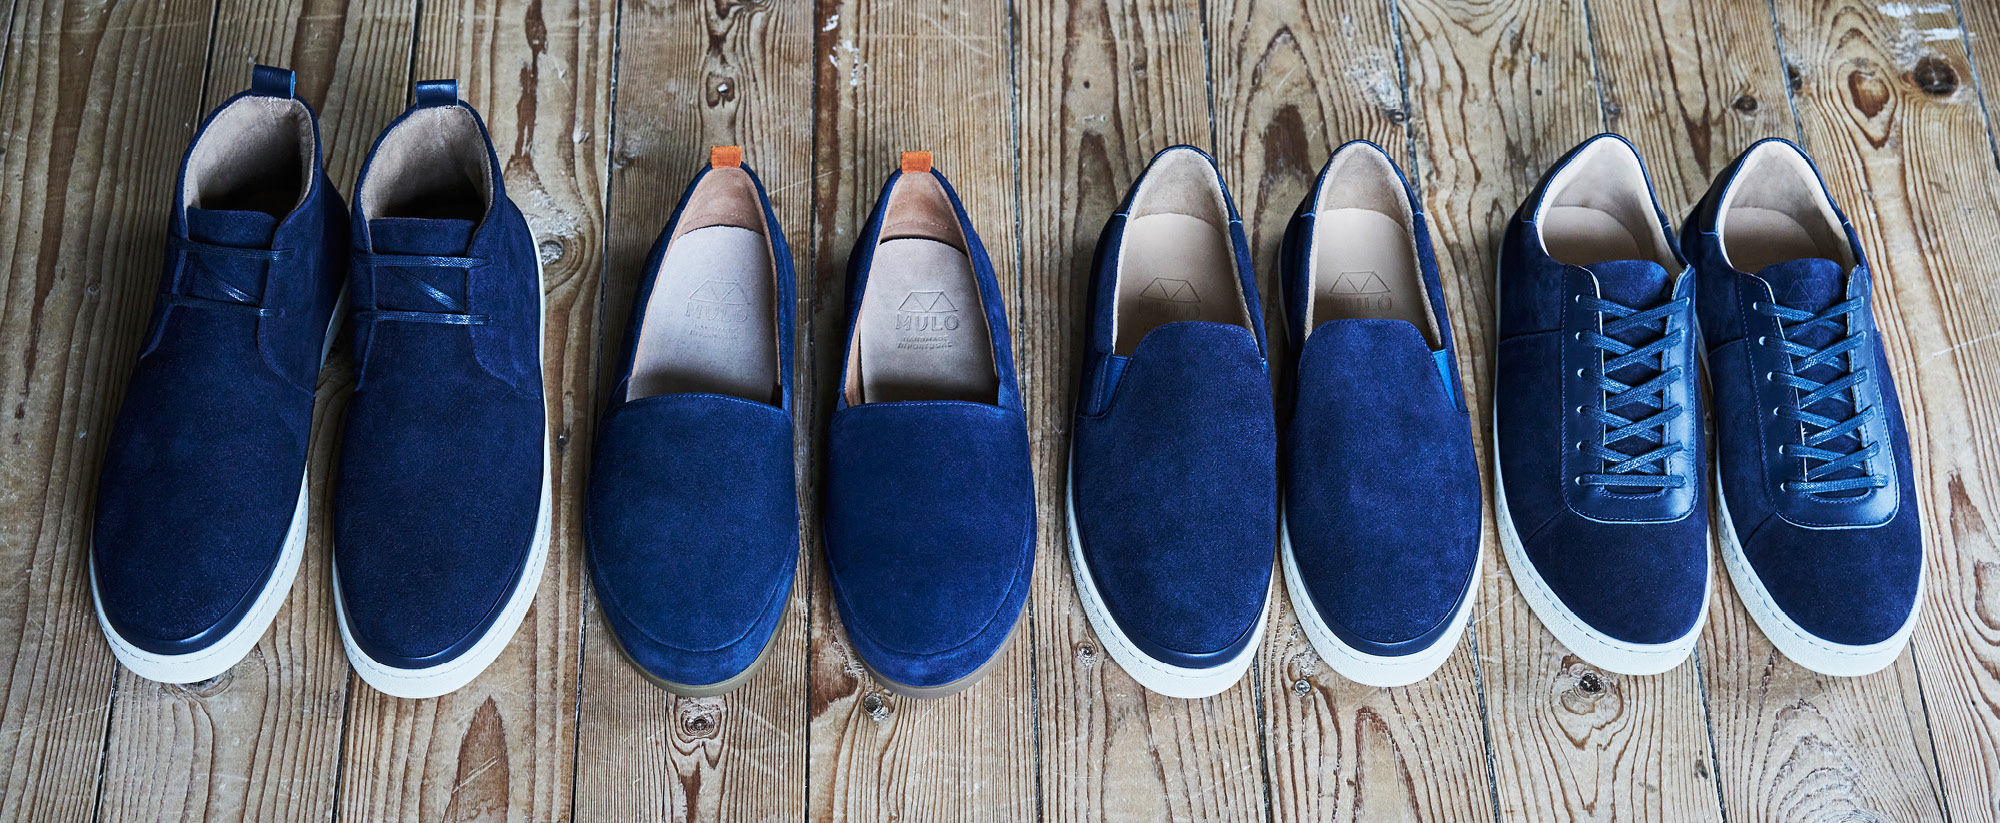 Uniform Dressing - Desert Boots, Mens Loafers, Mens Sneakers, Slip-On Sneakers